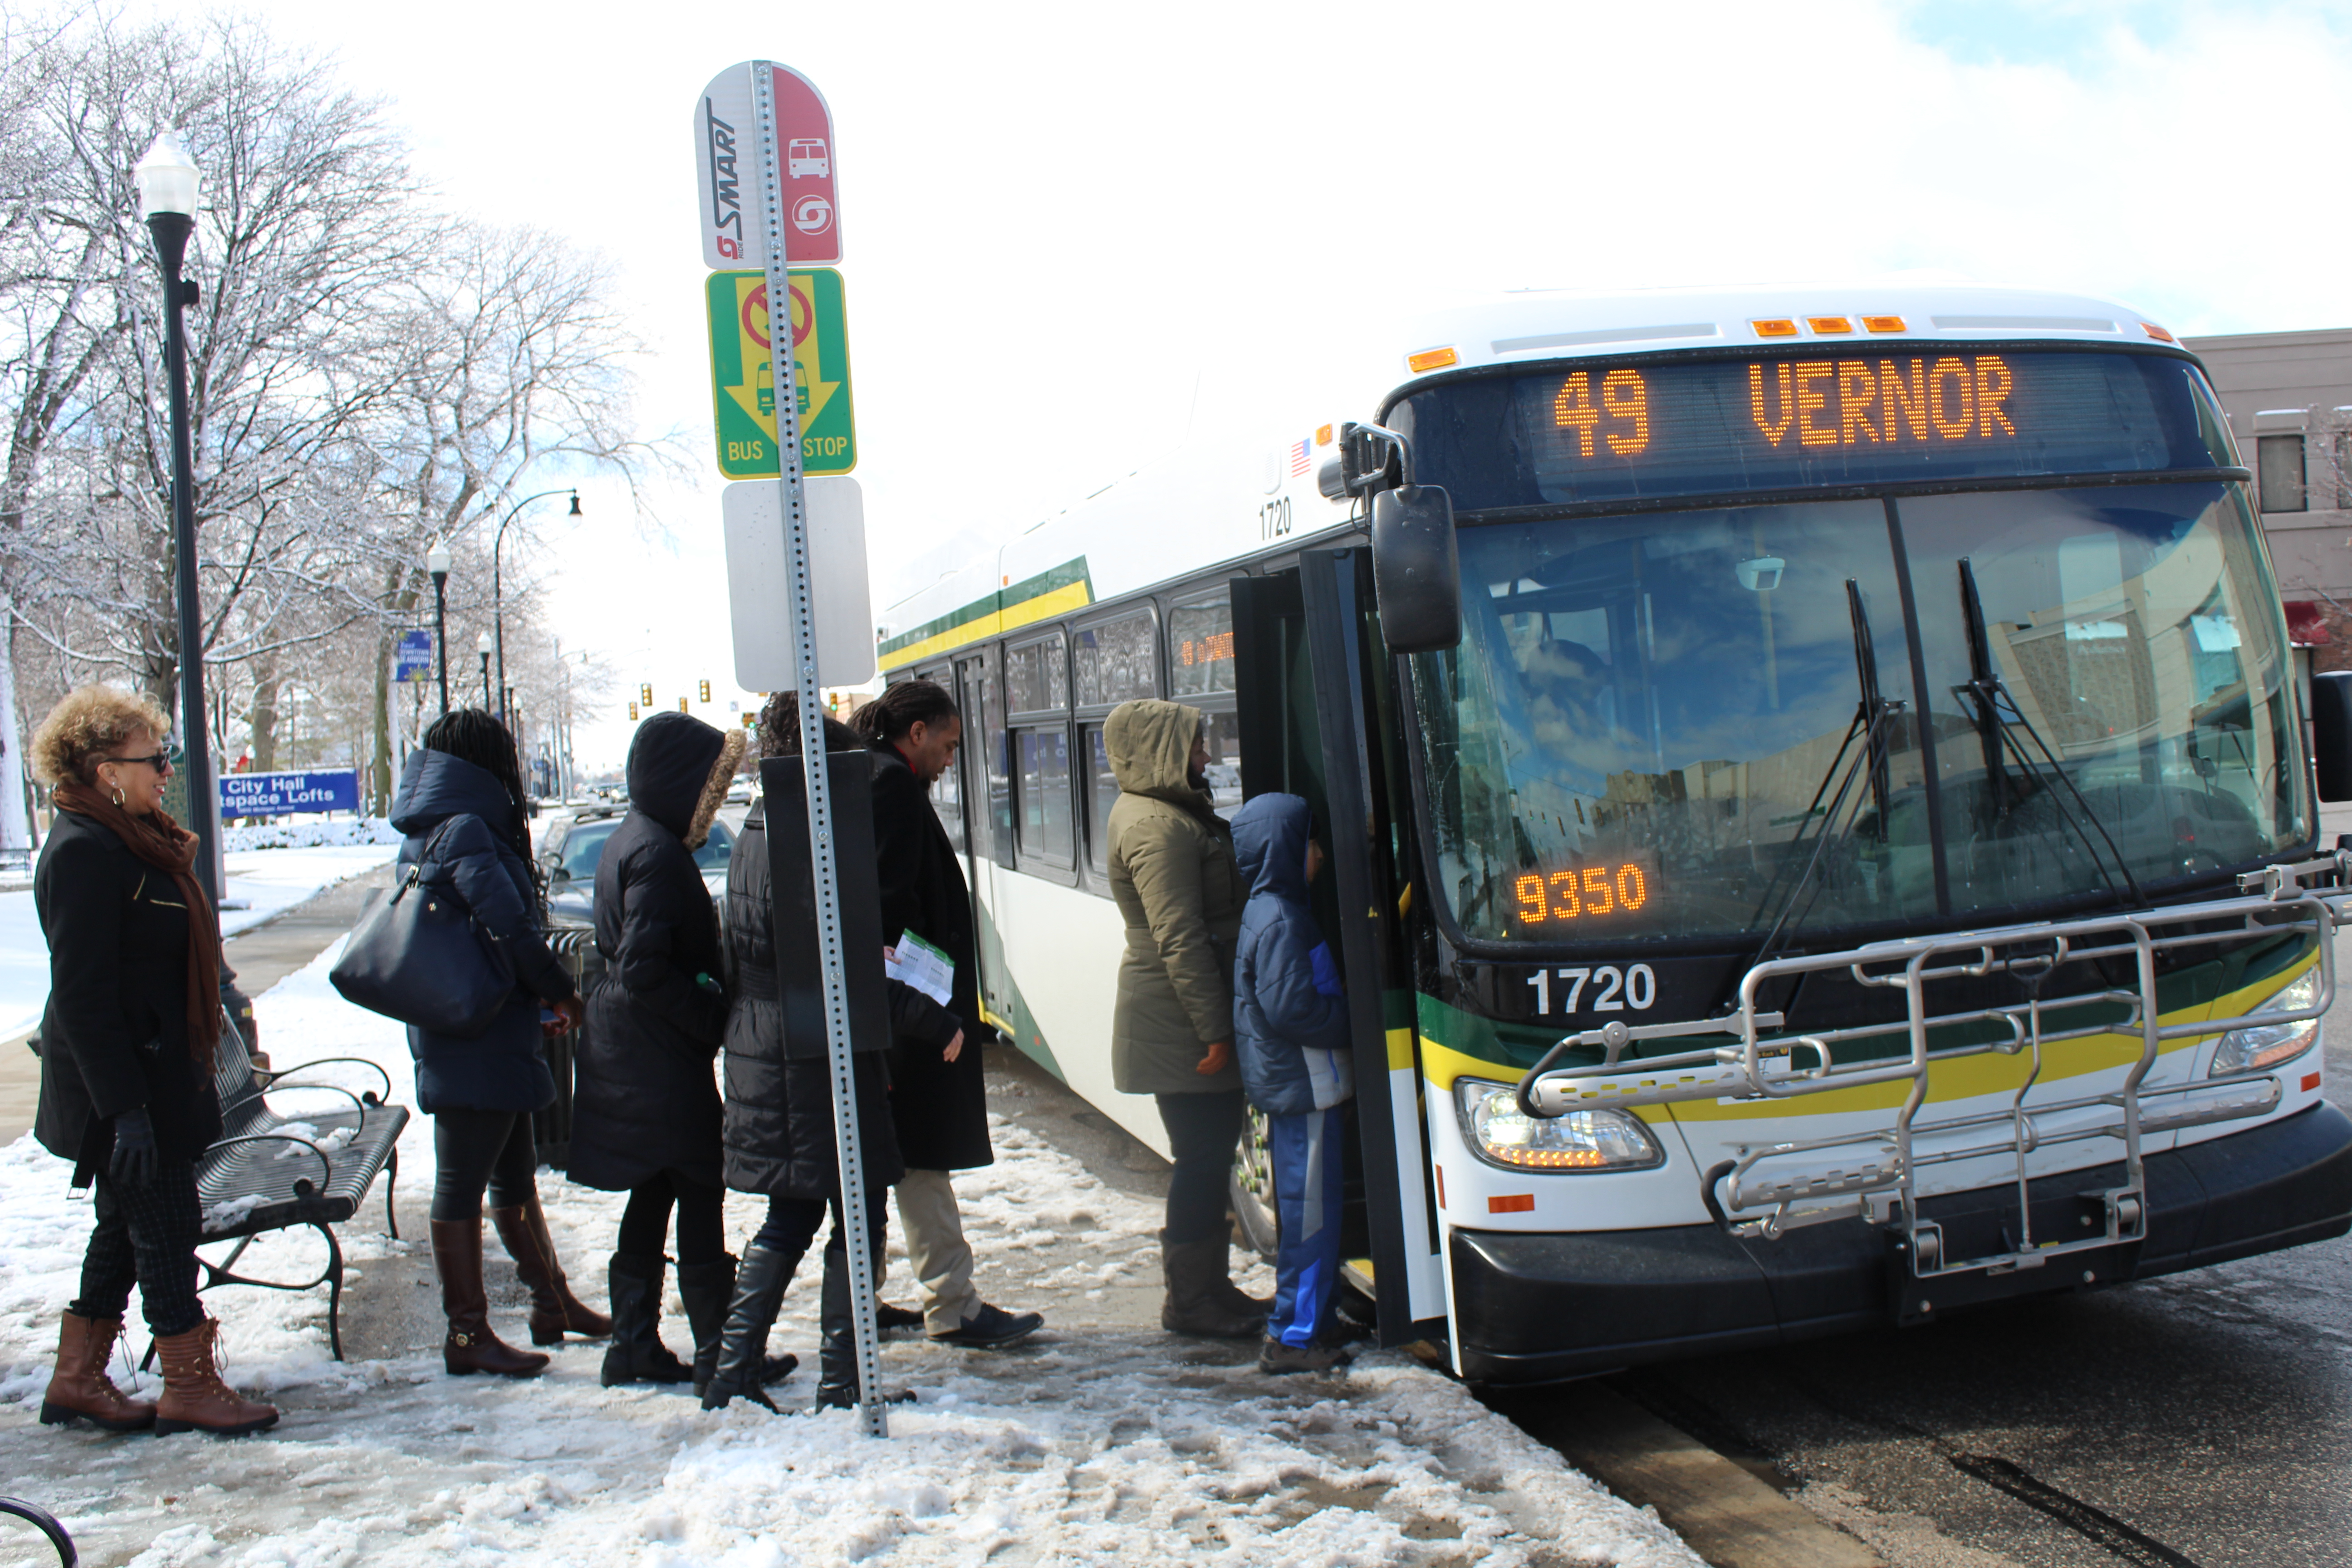 new to bus riding? here's help | wdet